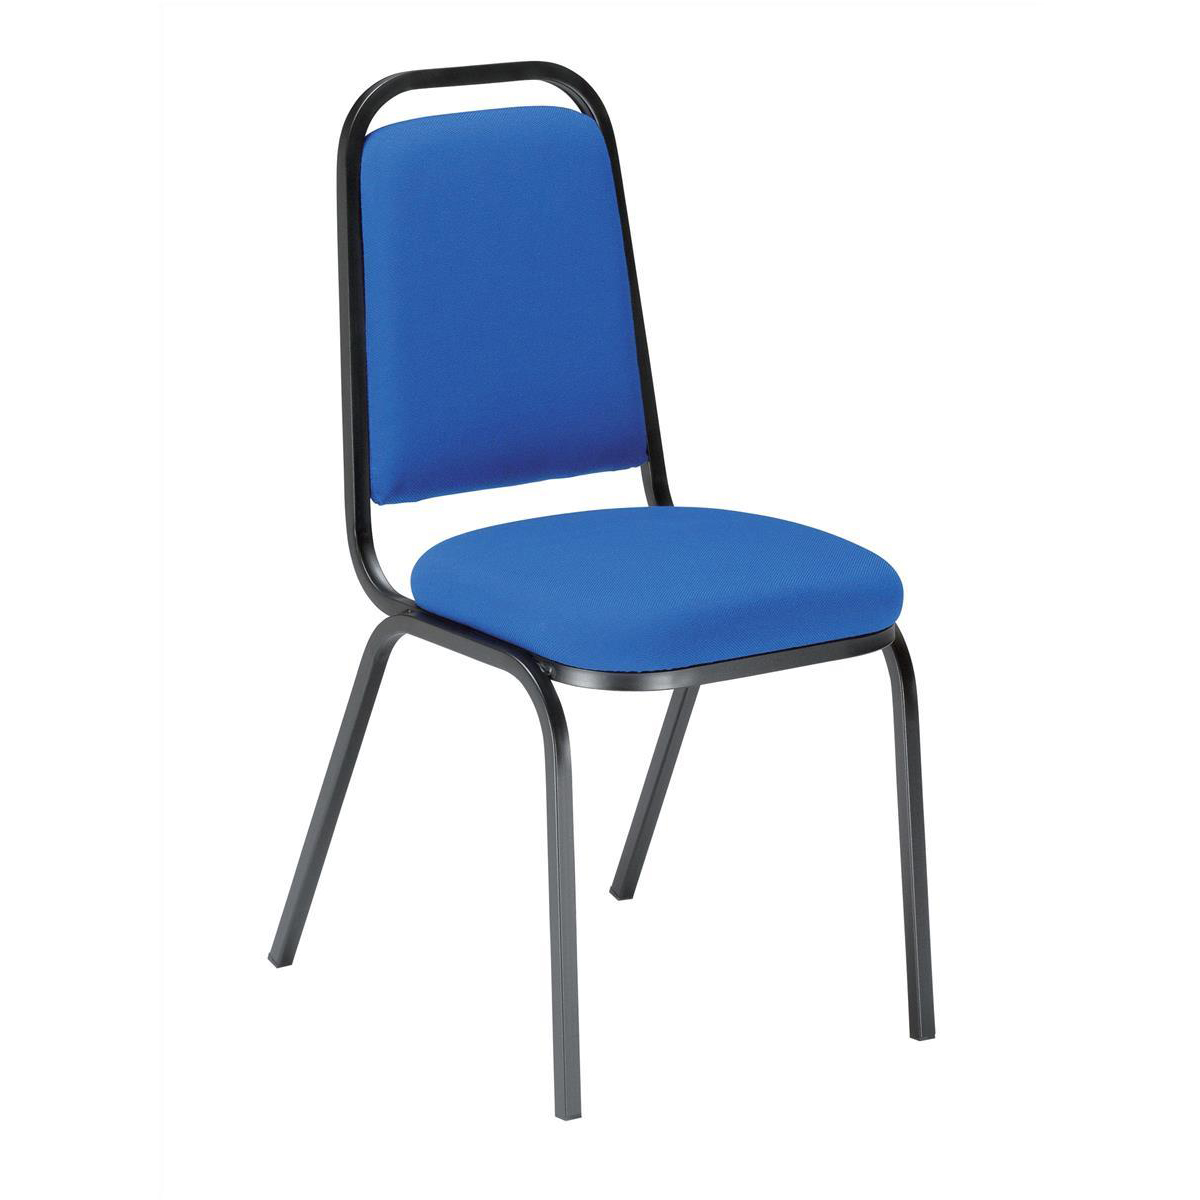 &Trexus Banquet Chair Blue/Black Frame 390x355x485mm Ref 56801